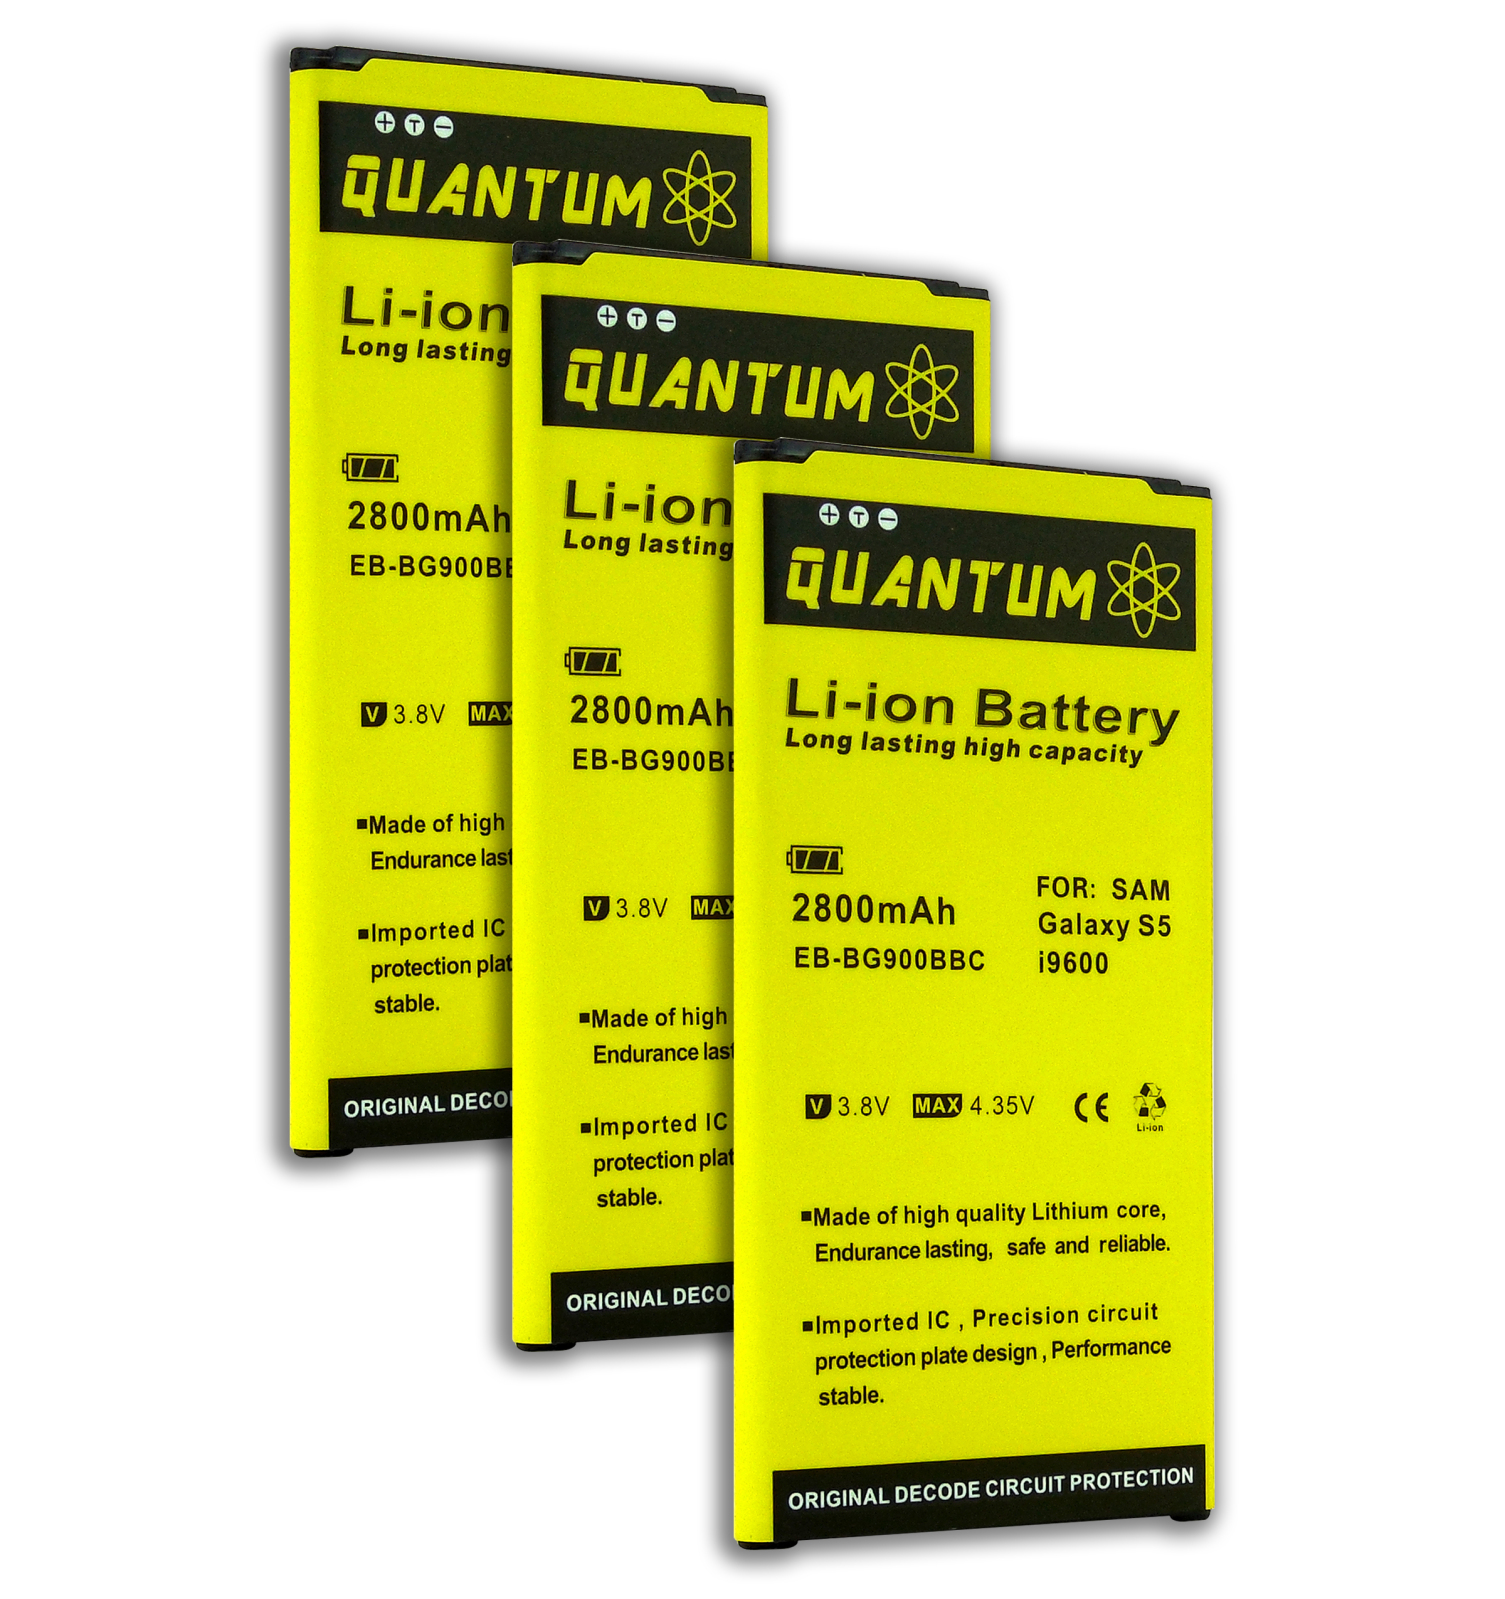 QUANTUM 3x 2,800mAh Li-Ion Batteries for the Galaxy S5, 12 MONTH WARRANTY